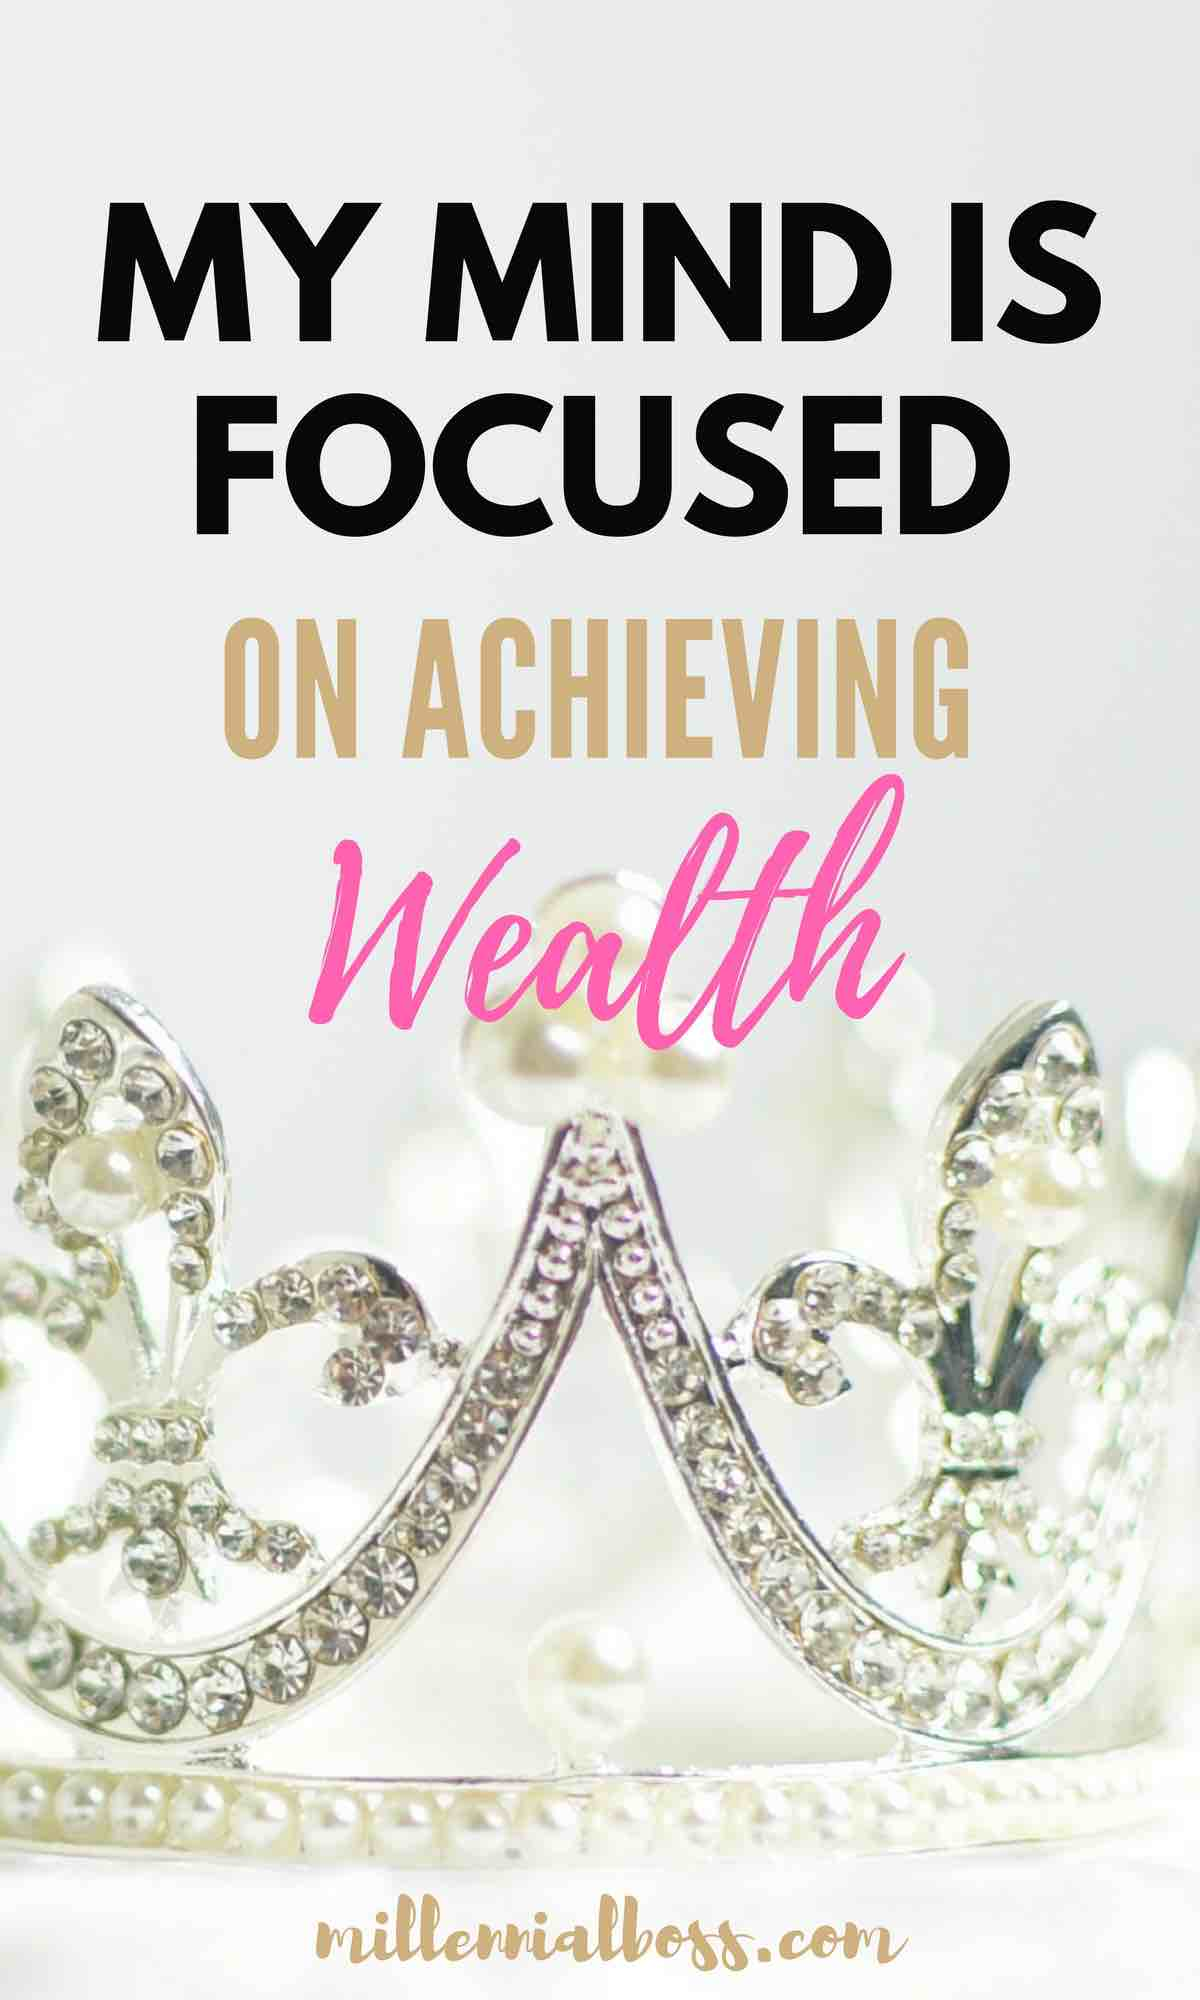 Yup! My mind is 100% focused on achieving wealth this year